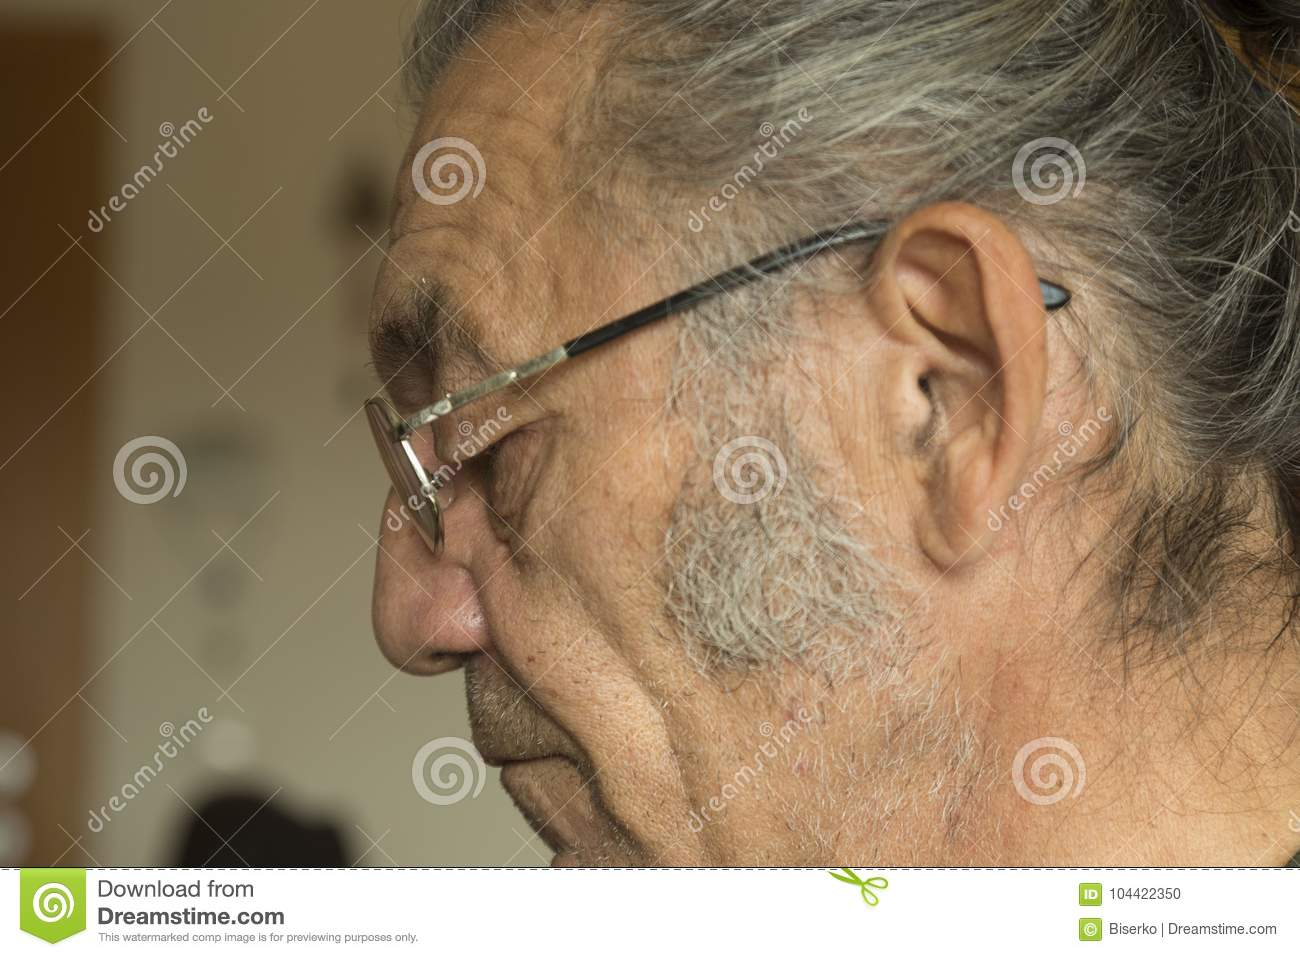 Portrait Of The Old Man With Reading Glasses Stock Photo - Image of  profile, tobacco: 104422350